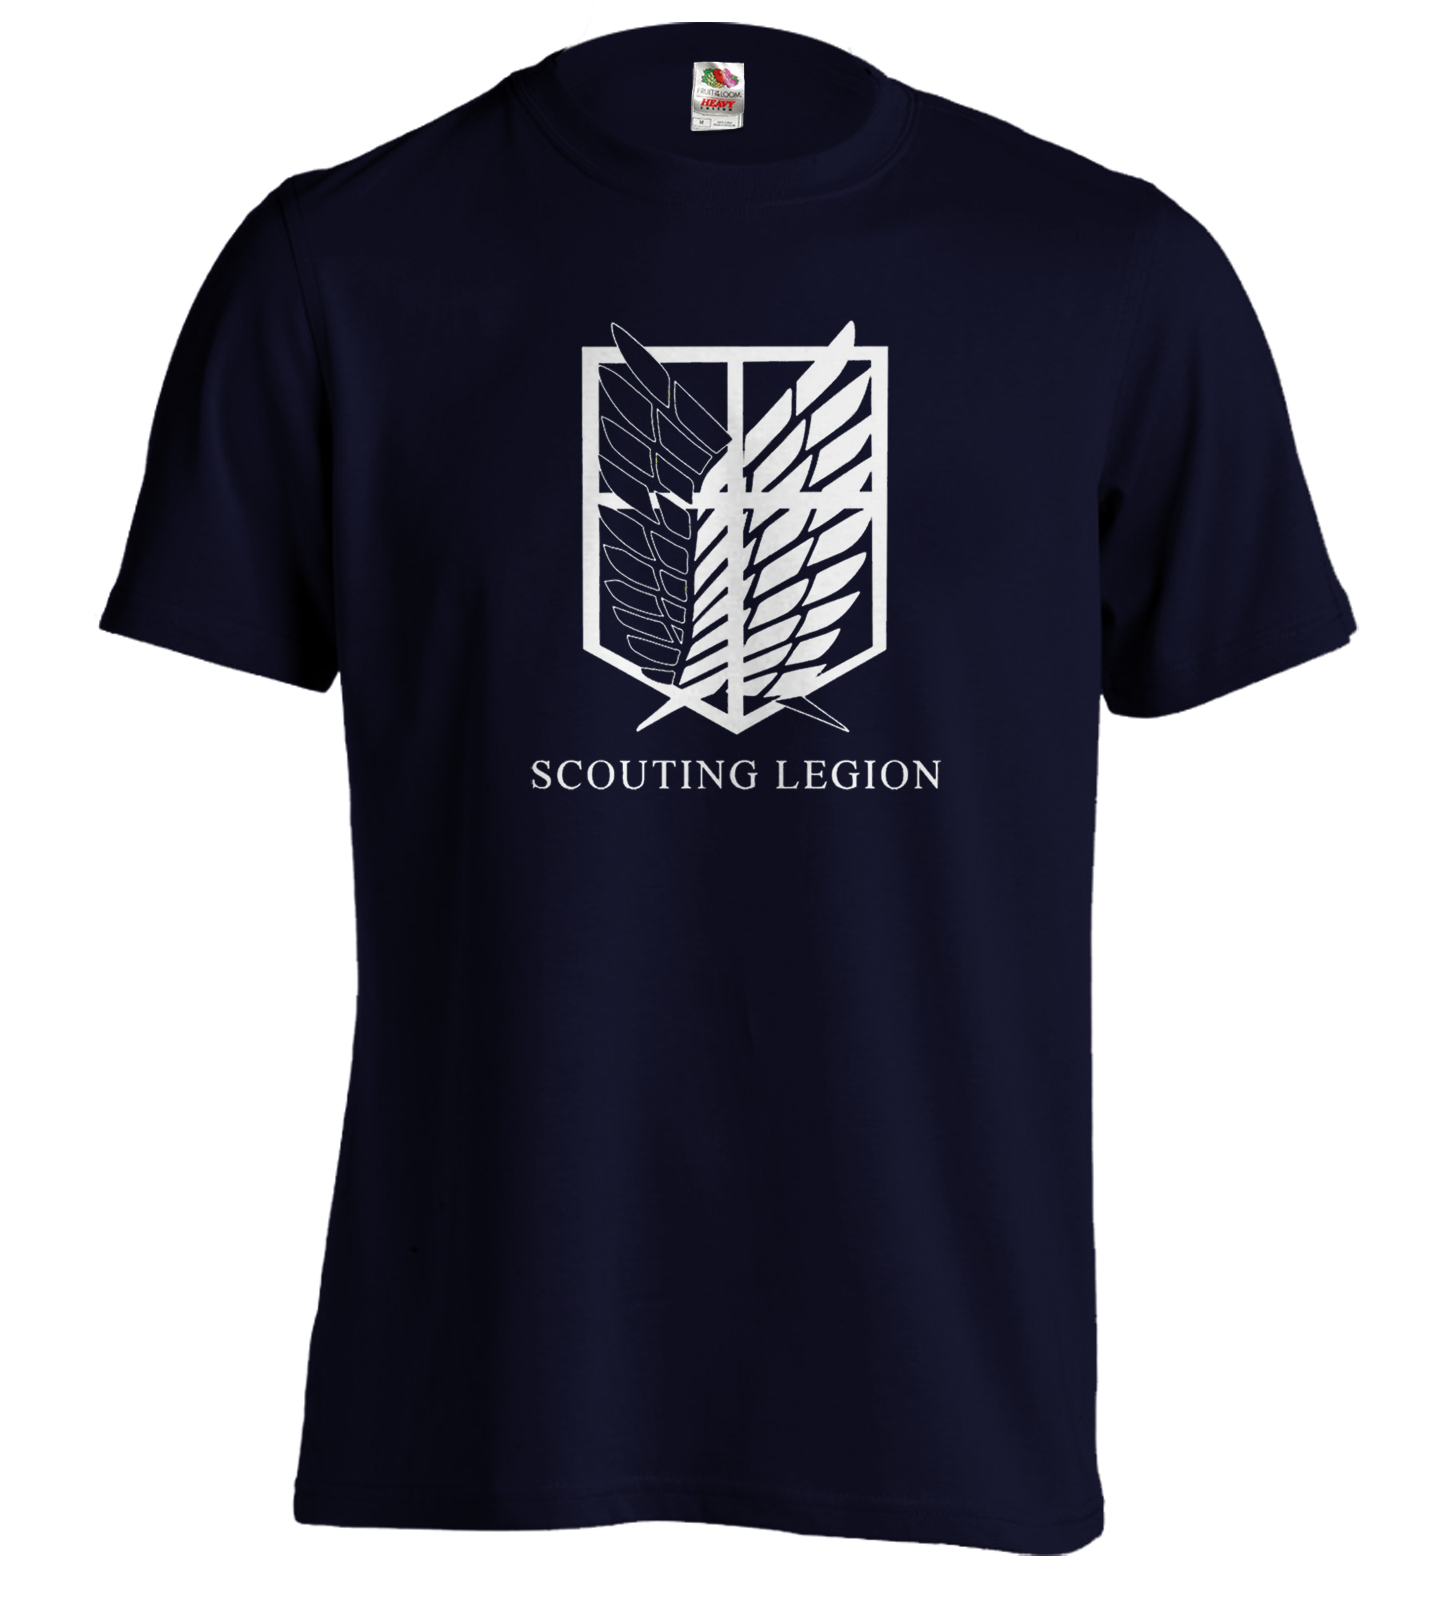 scouting-legion-logo-transparent-Google-Search-wallpaper-wp42911